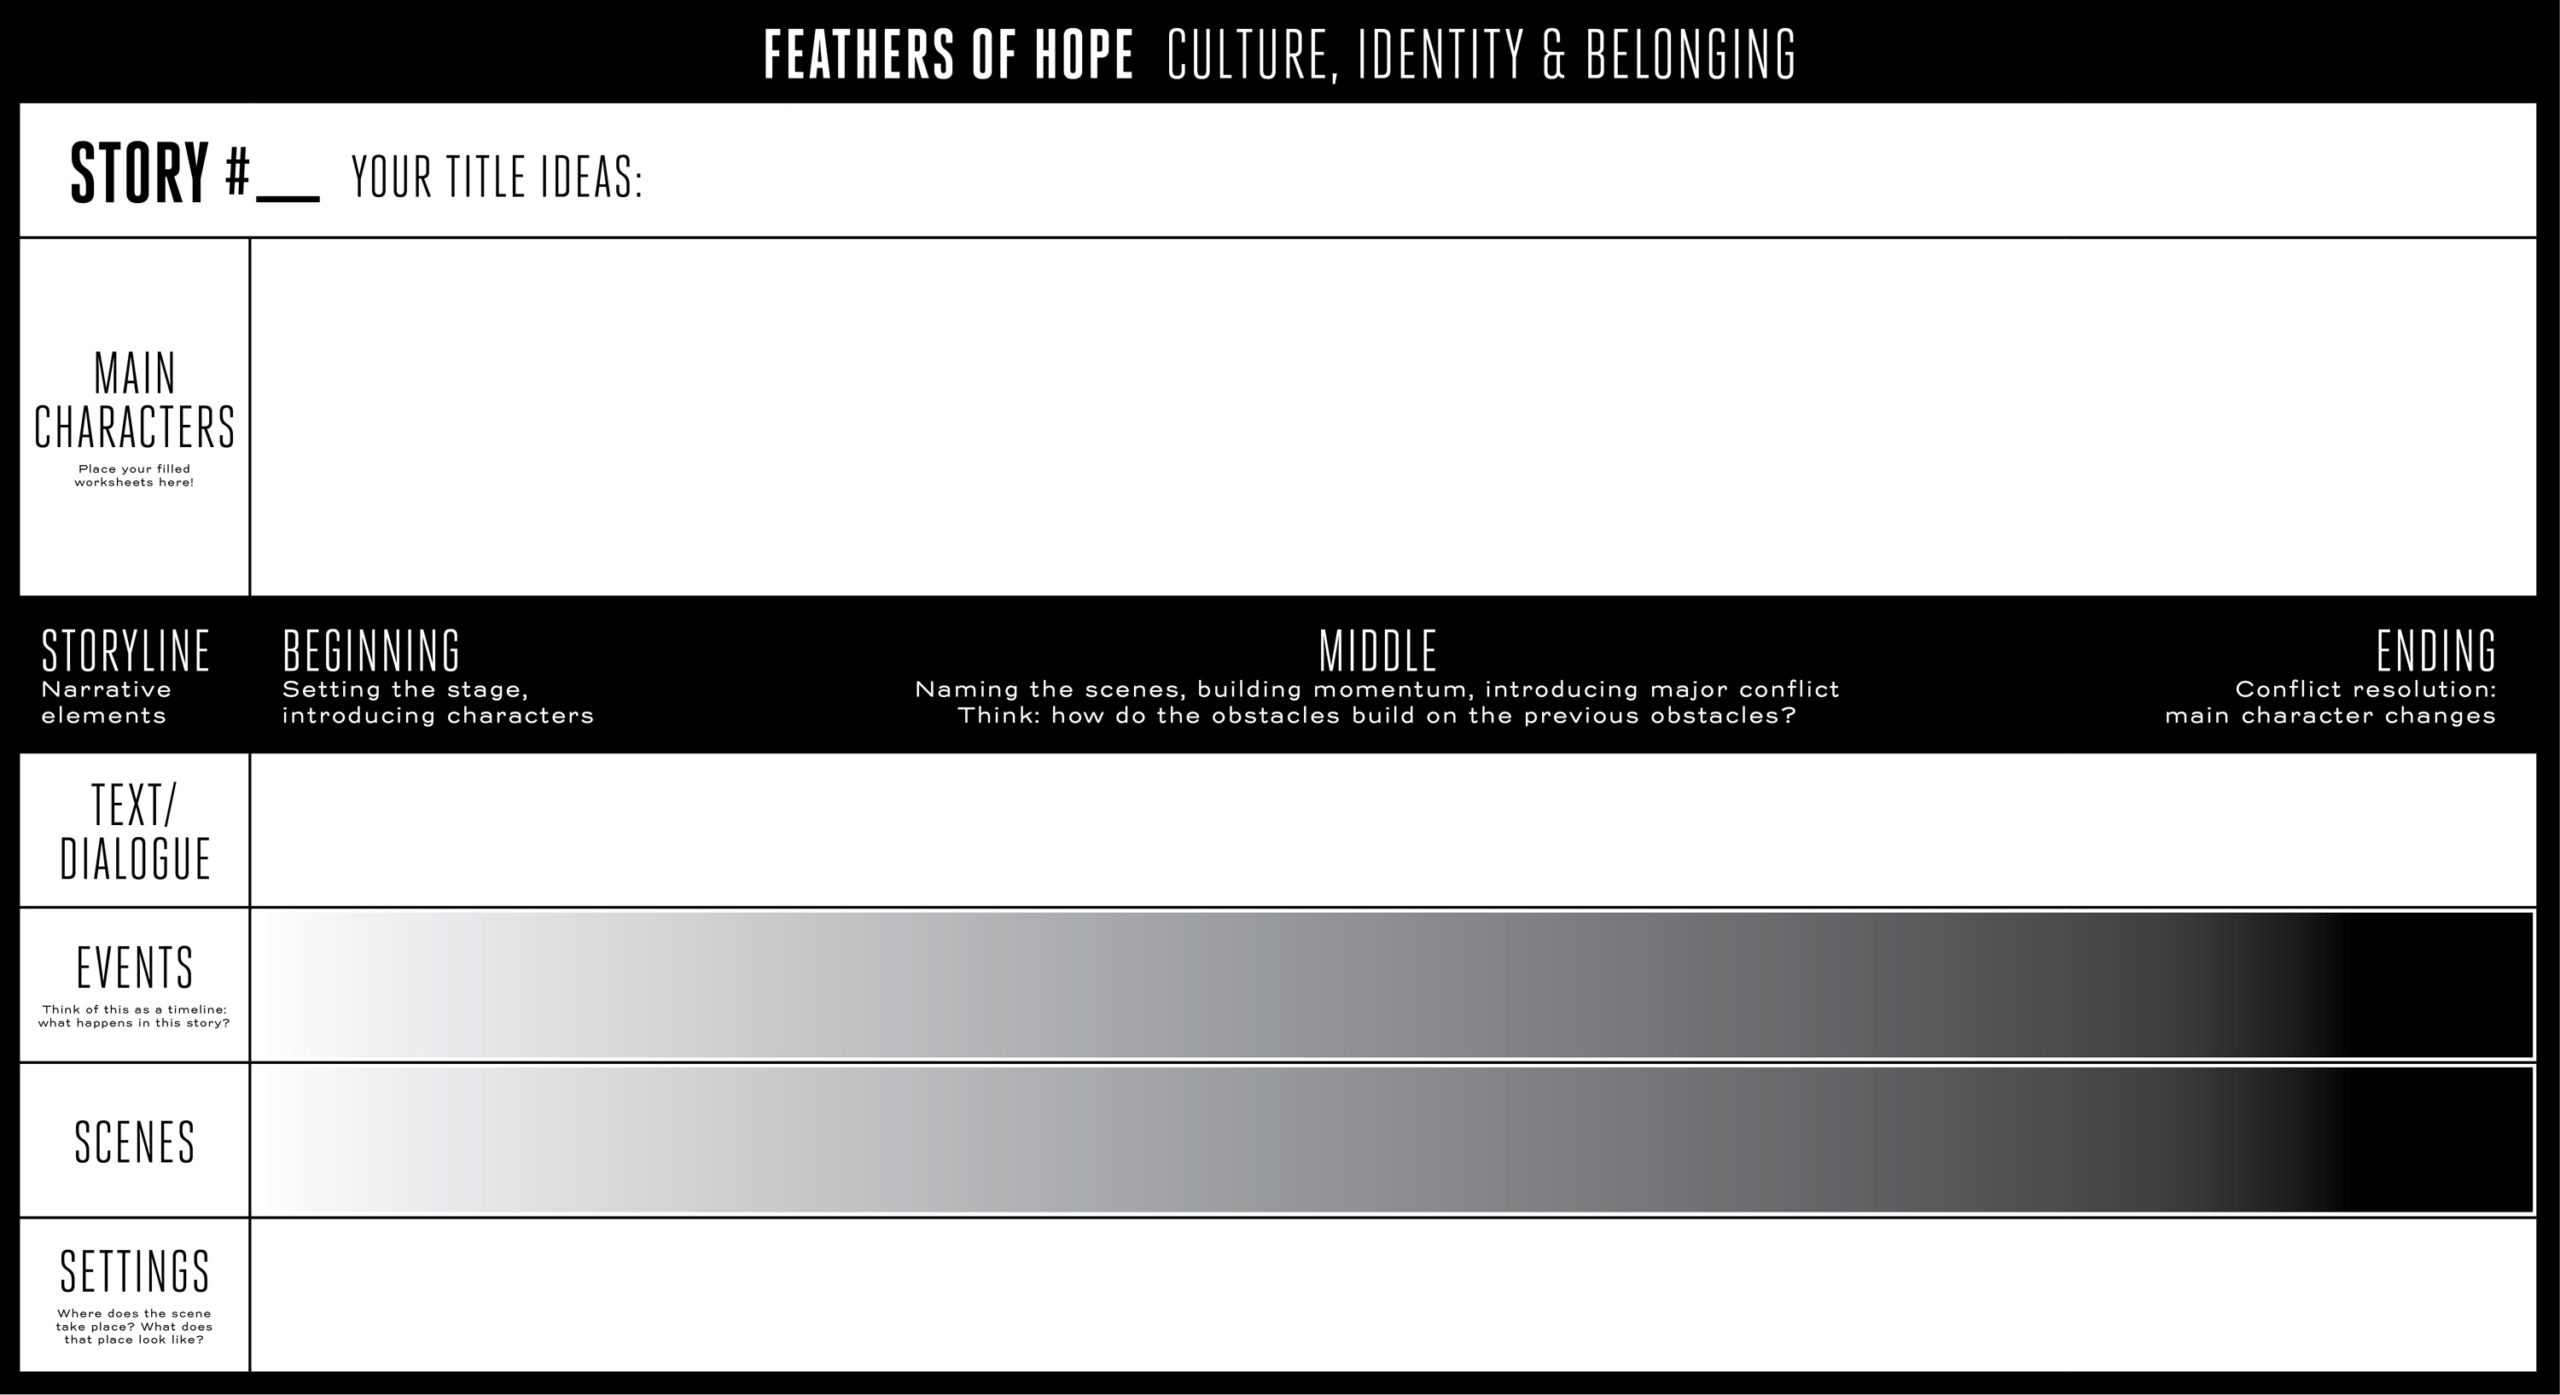 Image of a large-scale chart developed by And Also Too for the Feathers of Hope advisory. It consists of a table divided horizontally in the following areas: Main Characters, Text/Dialogue, Events, Scenes, and Settings. Vertically, the chart is divided by the headings Beginning [of storyline], Middle, and Ending.